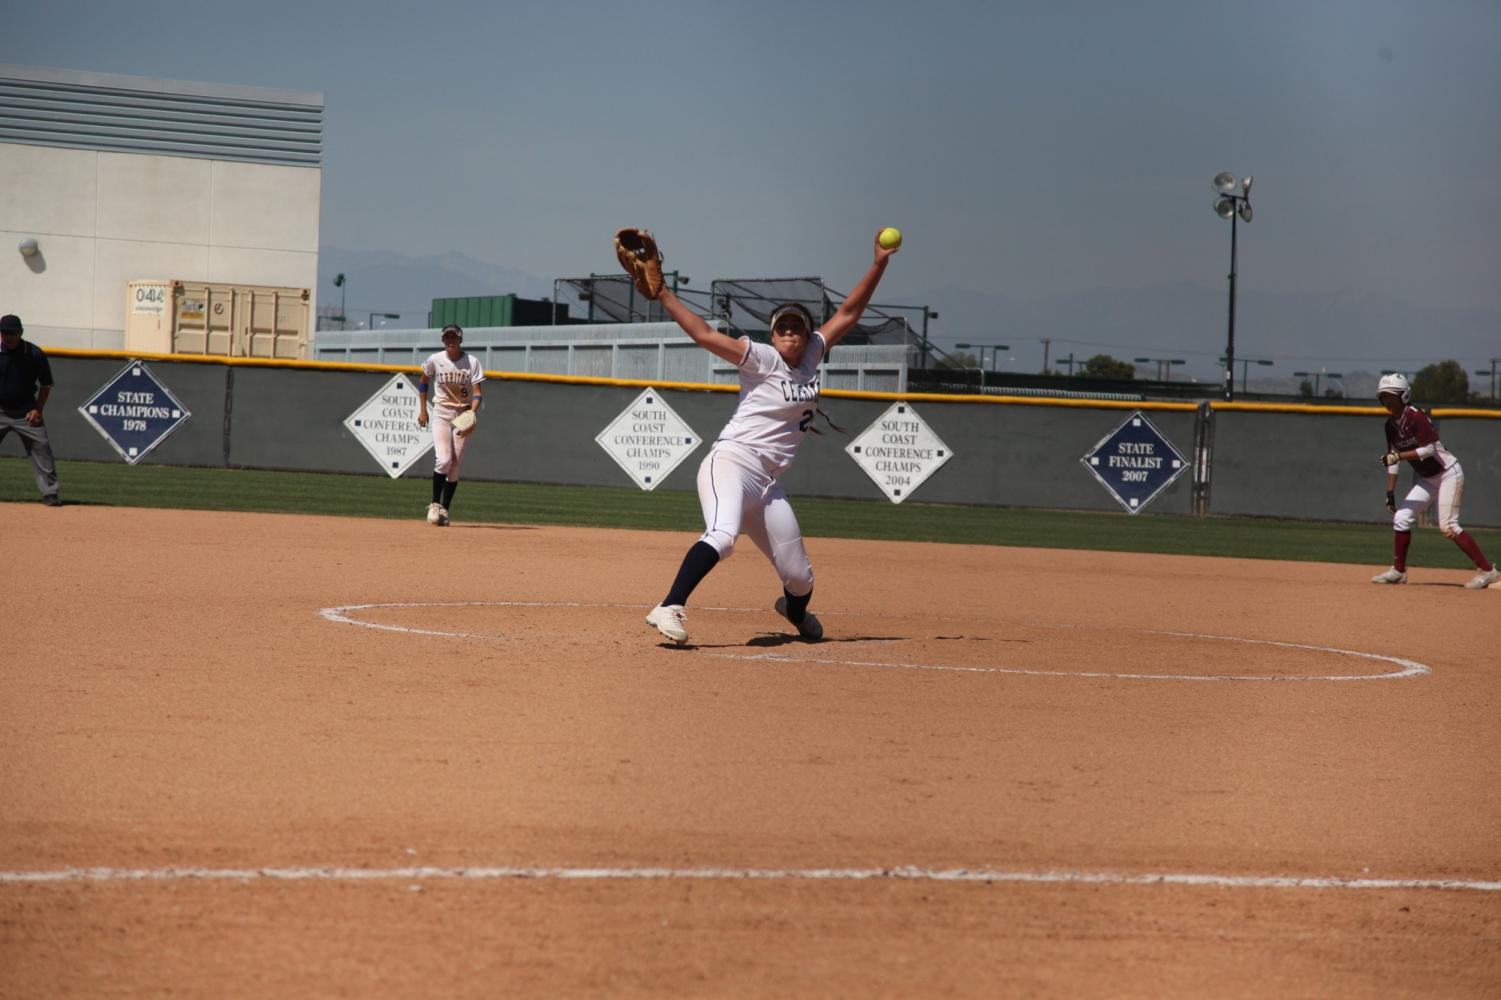 Sophomore pitcher No. 20 Sierra Gerdts pitching in the second game against Southwestern College in a doubleheader on April 13, 2019 at Cerritos College. Gerdts pitched a total of four innings and allowed five hits and had one error.